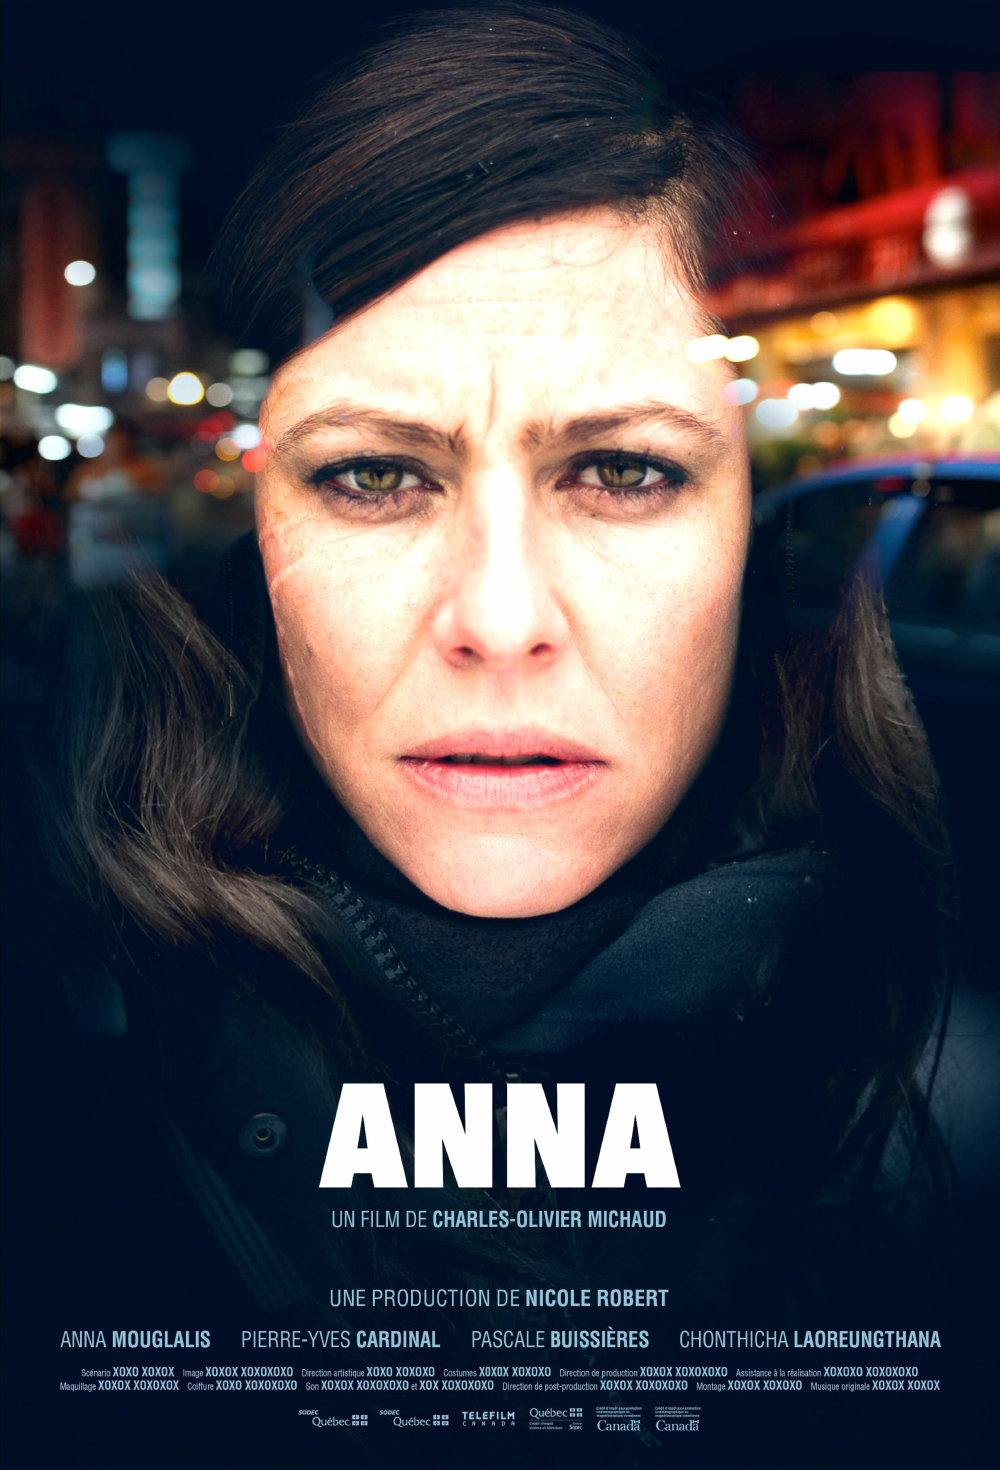 ANNA-Posters-5aout_00014.PNG